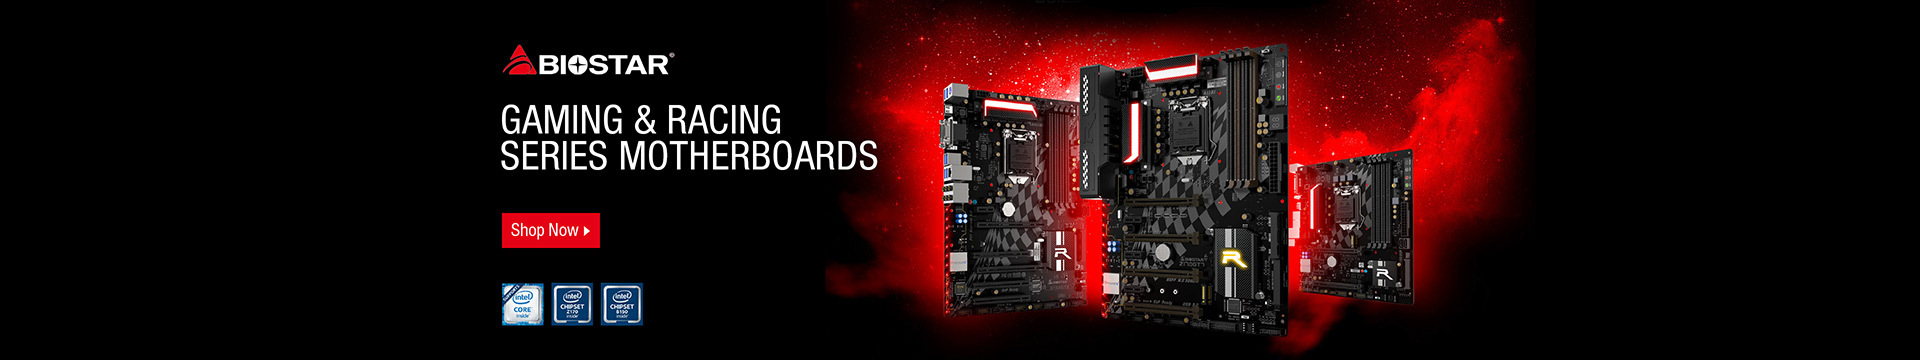 Gaming & Racing series motherboards